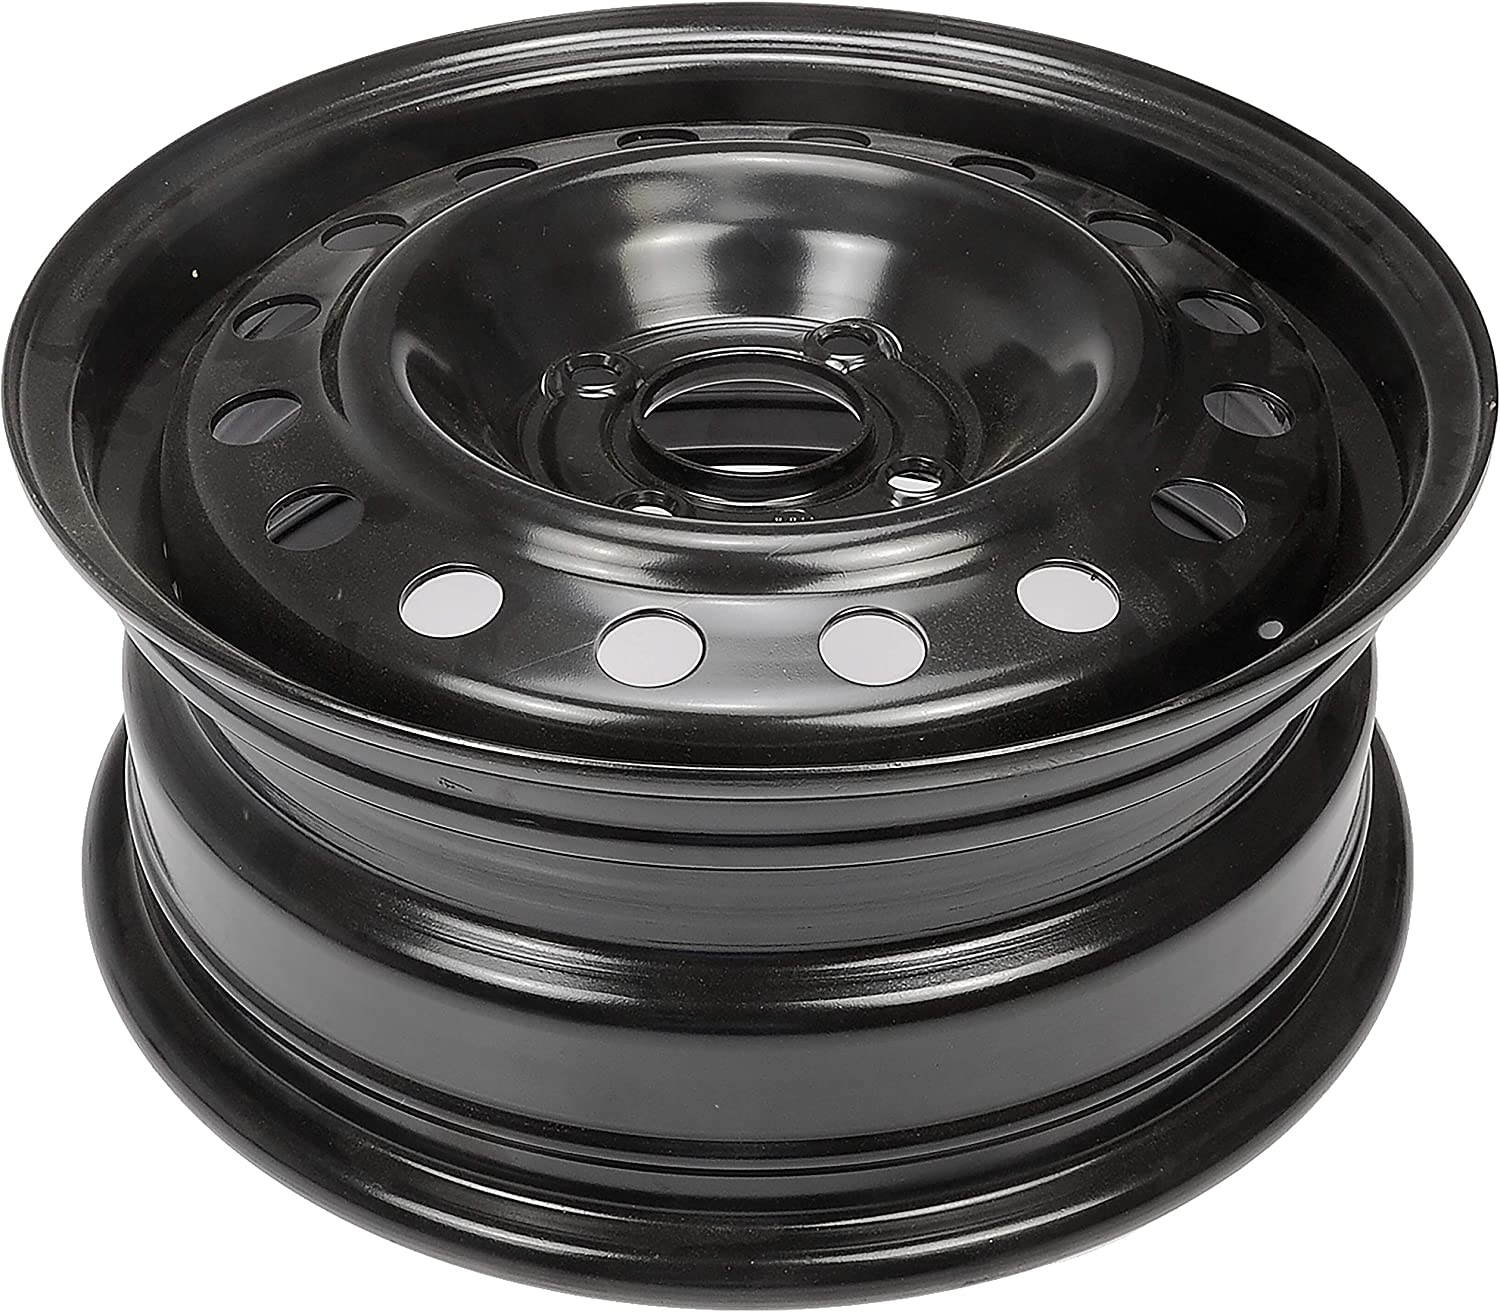 Dorman Steel Wheel with Black Painted Finish